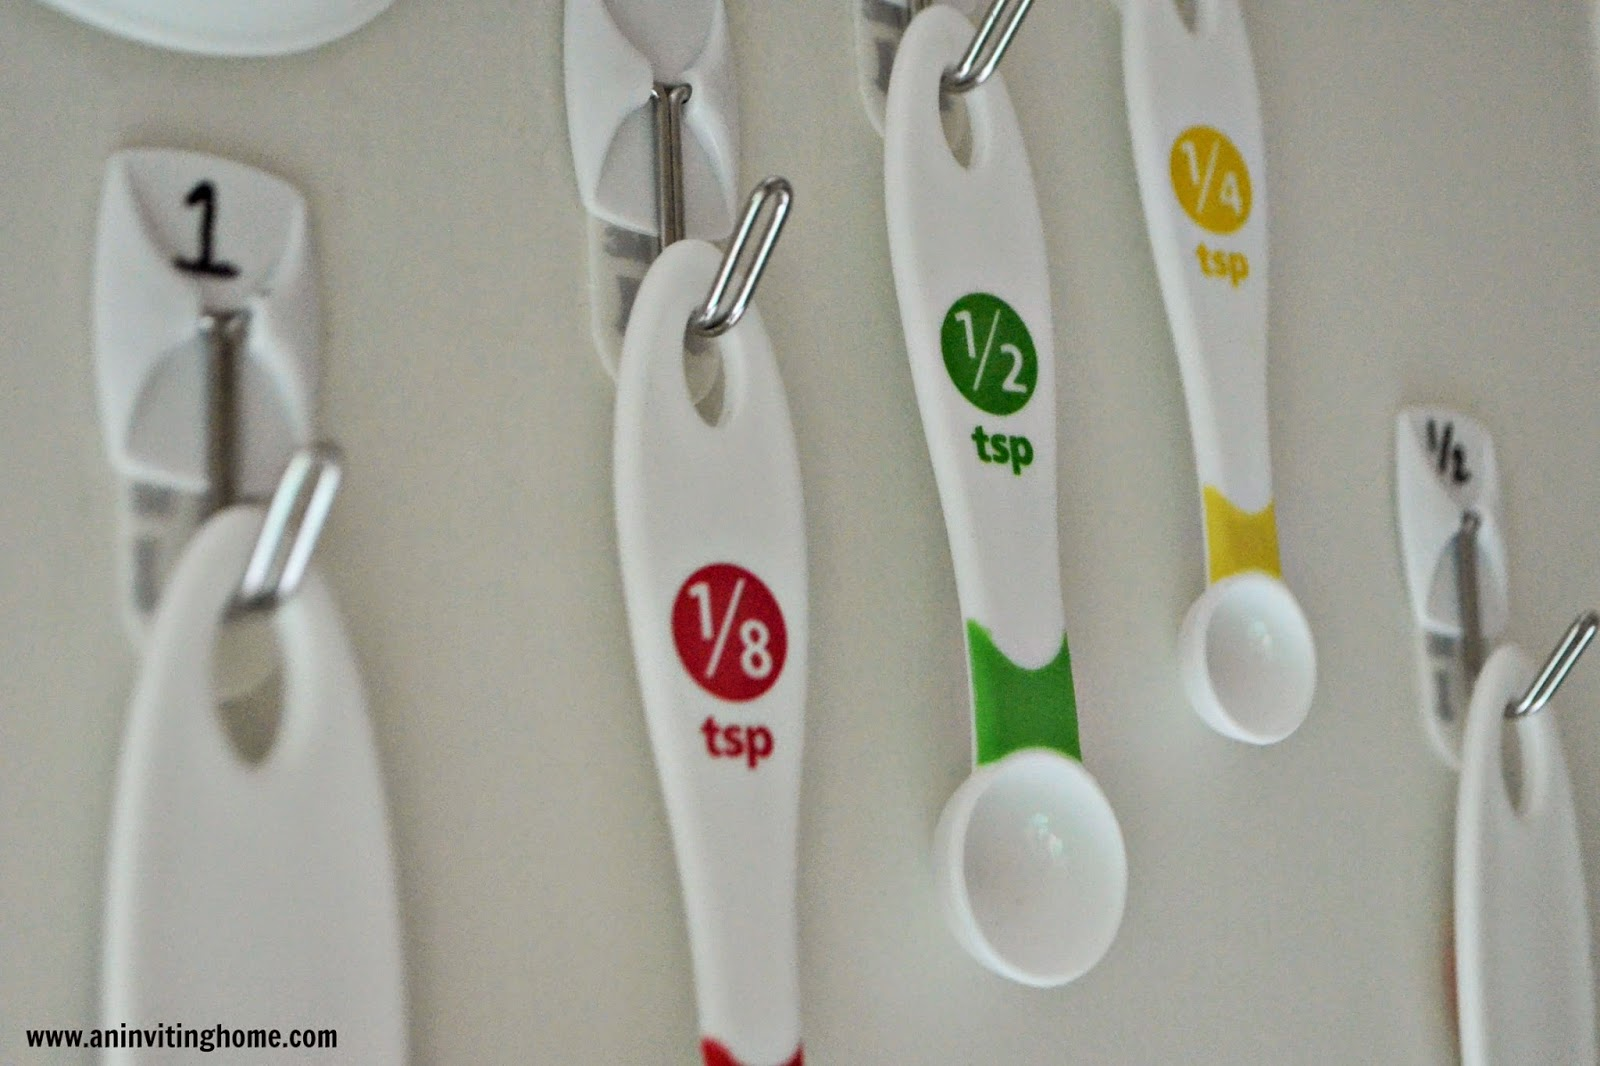 organizing measuring cups and spoons